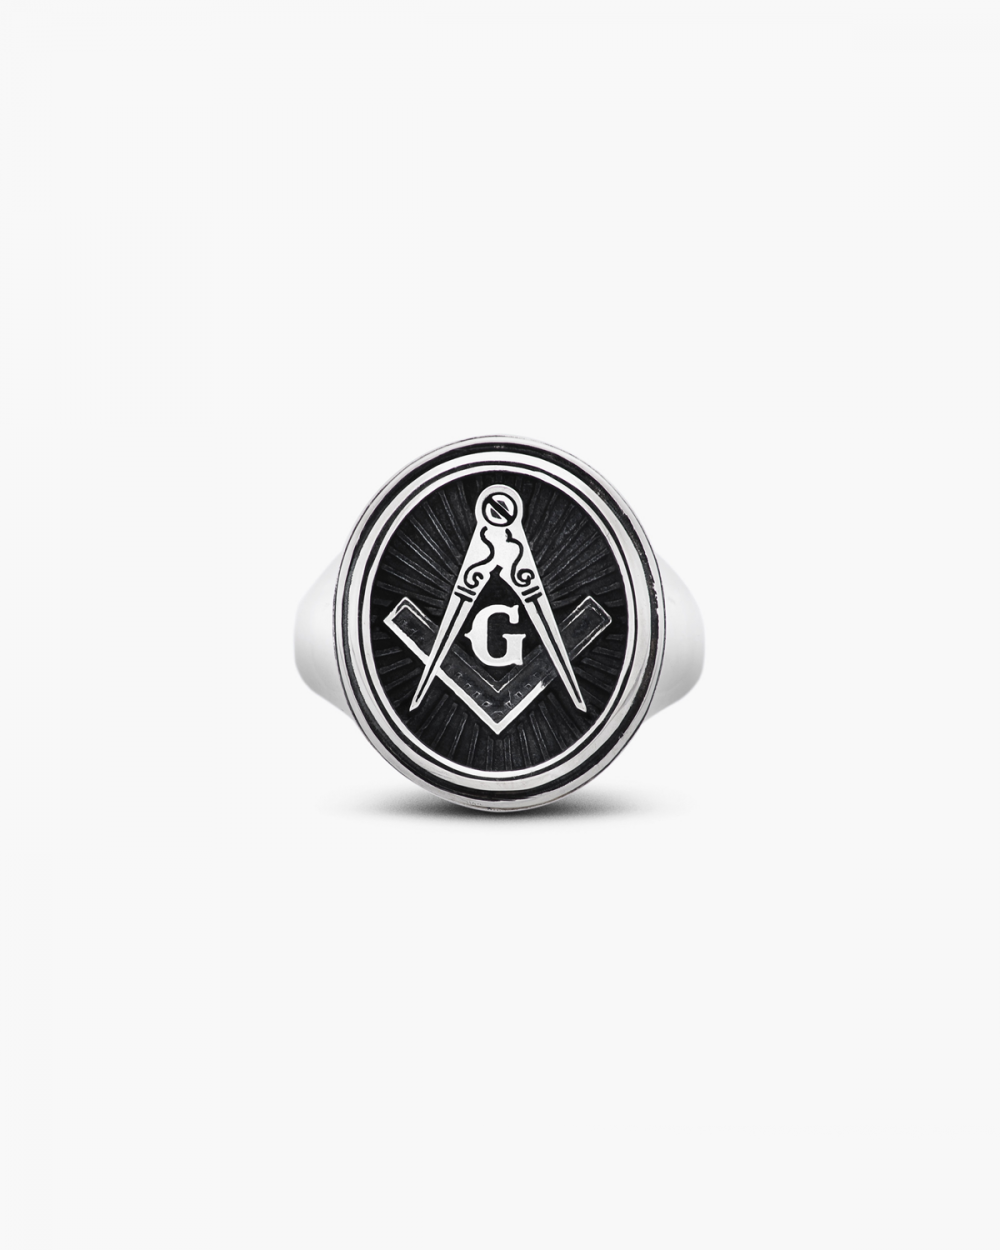 Archive Sale GOD OR GEOMETRY SIGNET RING NOVE25